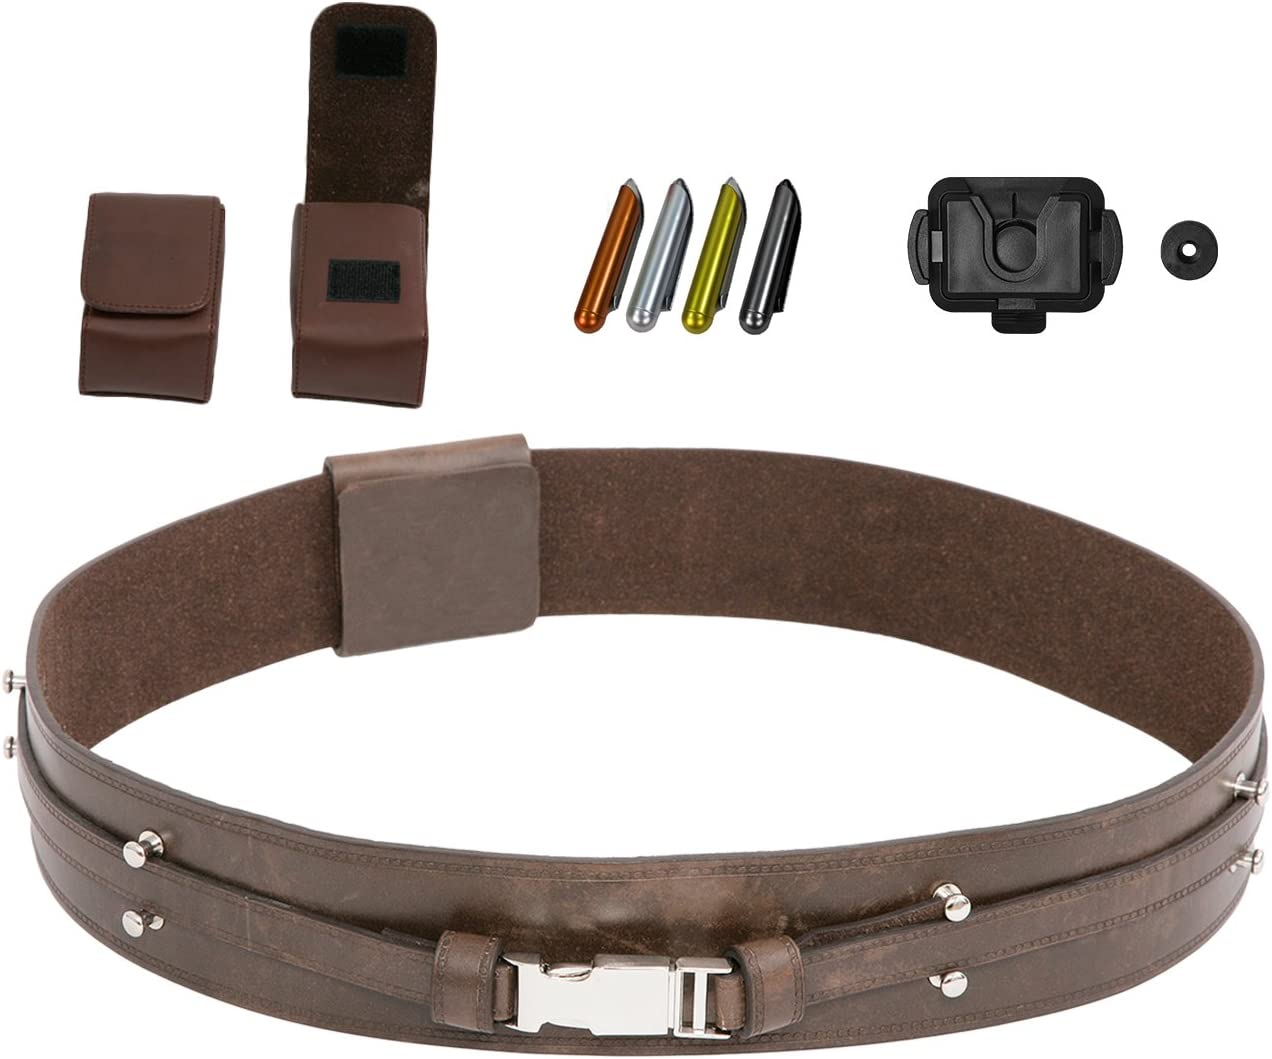 Star Wars Jedi Belt in Brown for your Anakin Skywalker Costume from UK